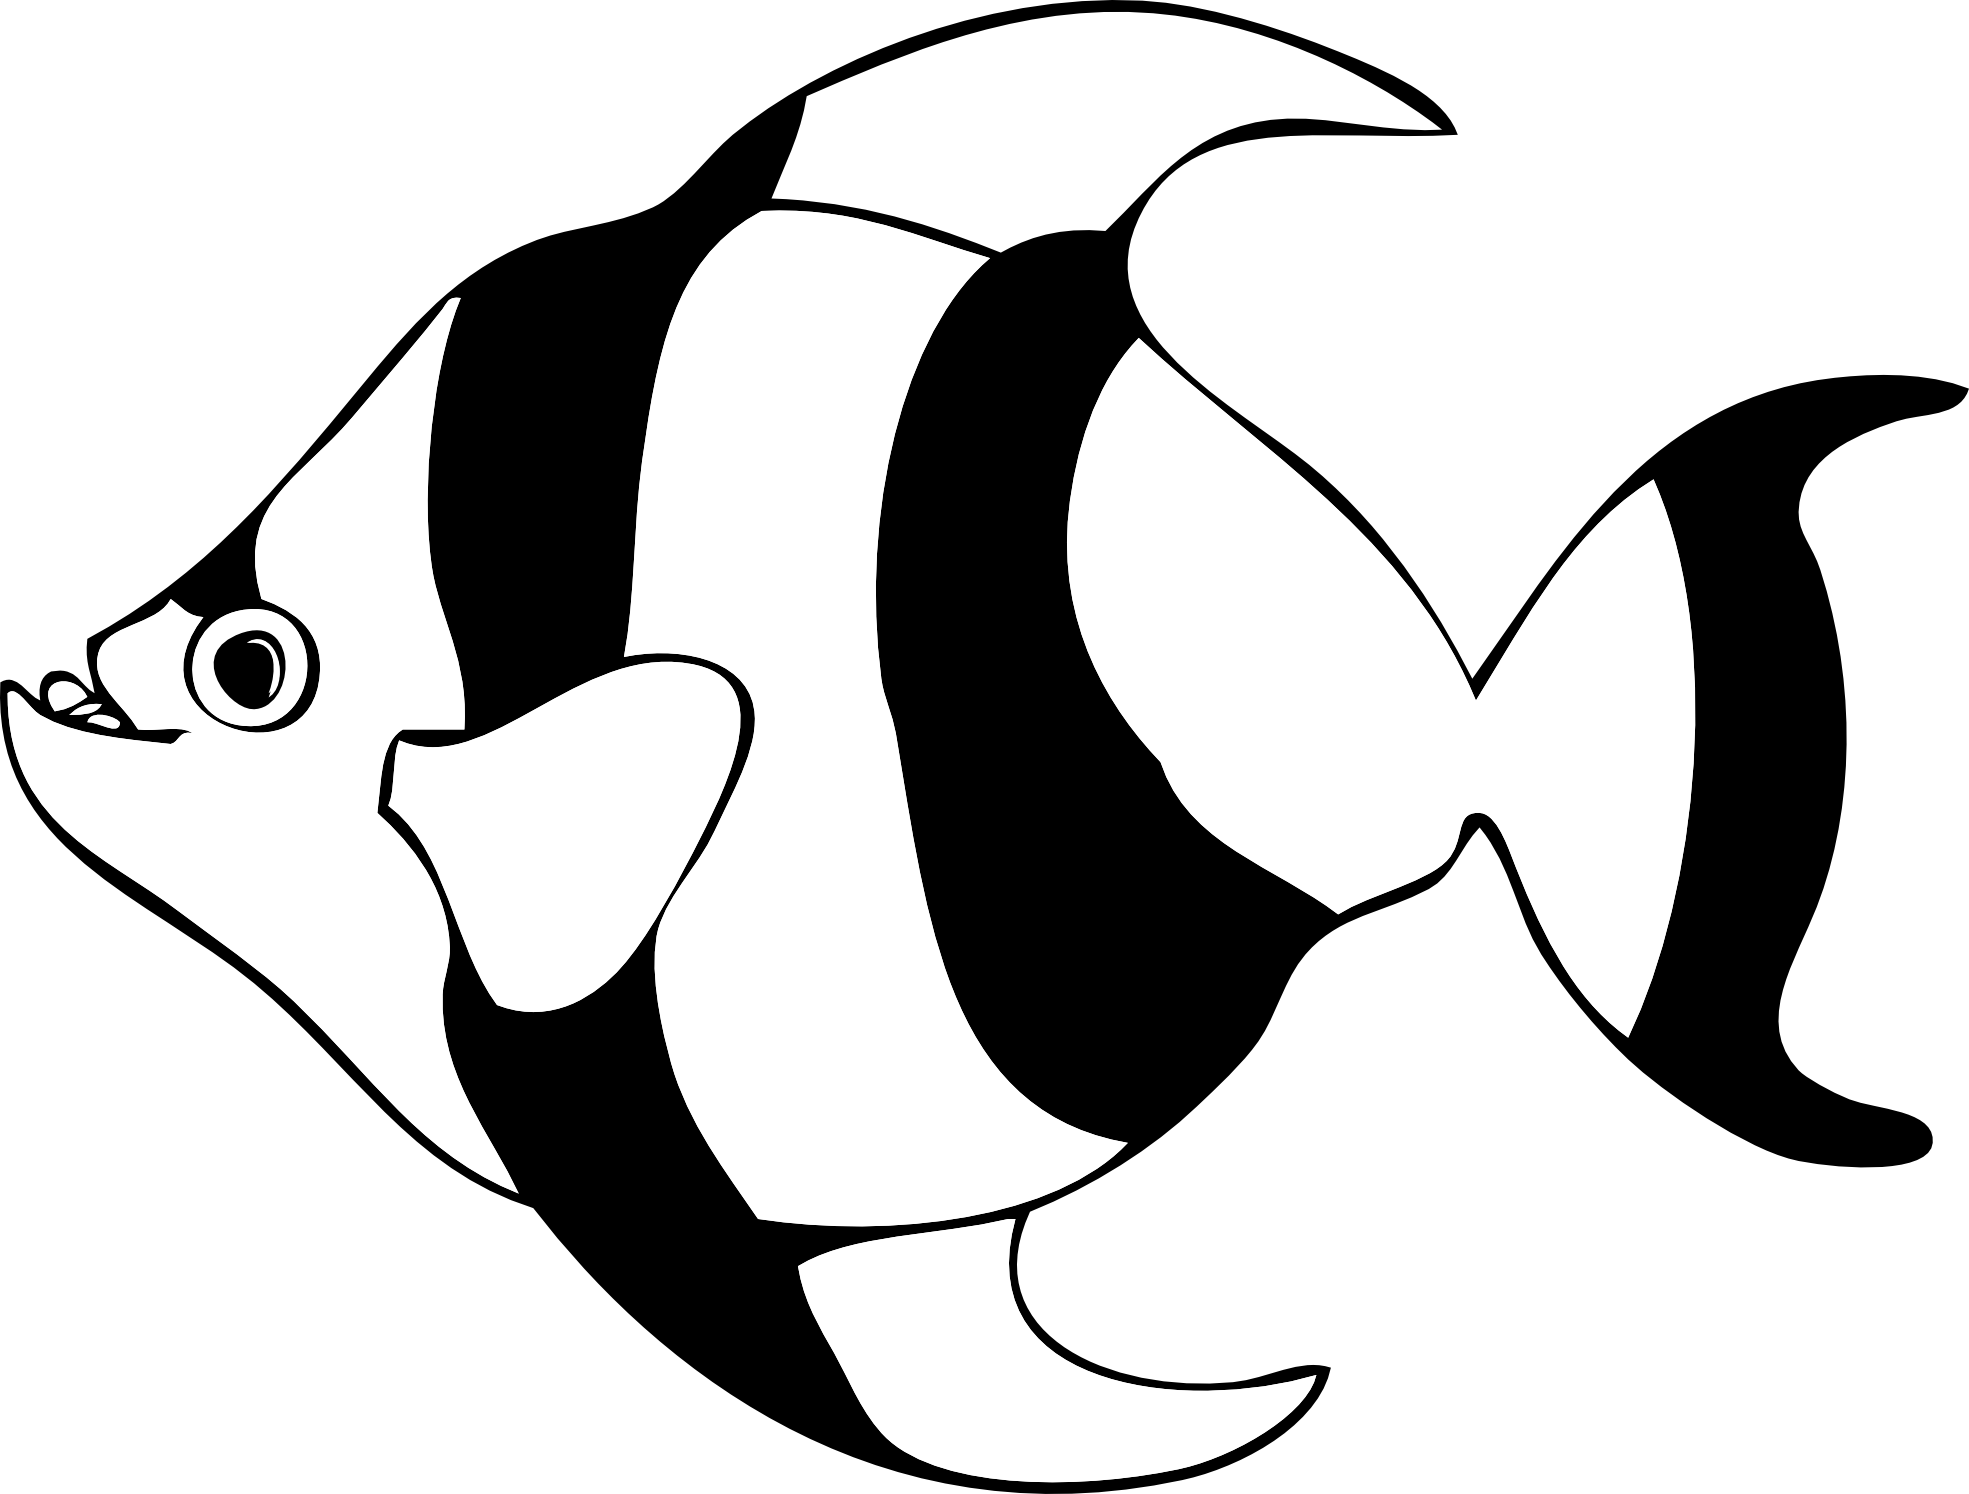 png ocean black and white transparent ocean black and white png rh pluspng com ocean animals clipart black and white